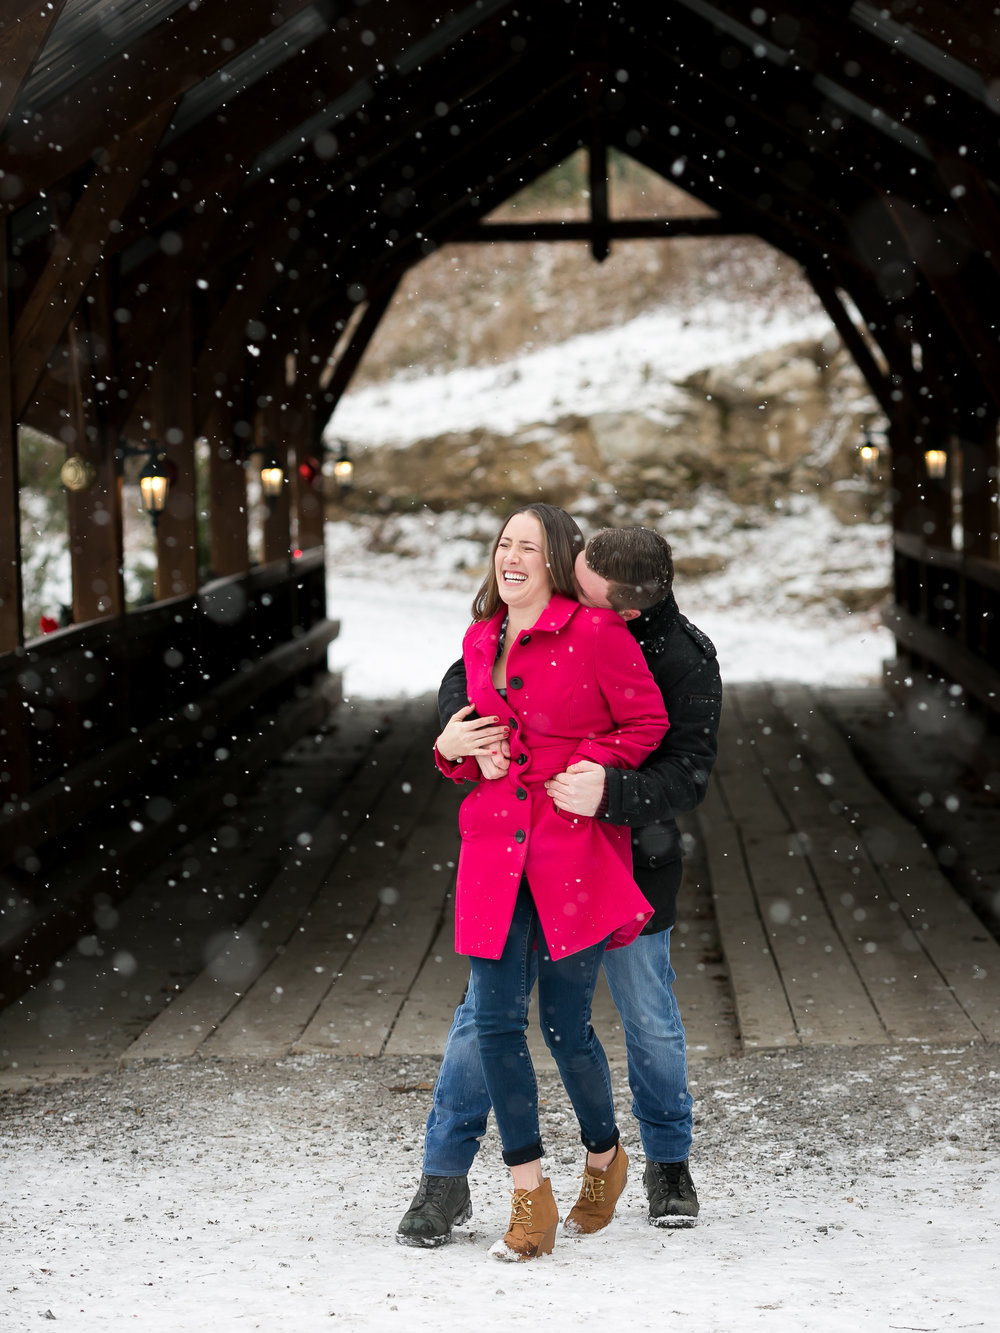 Sara-Chris-Winter-Engagement-Session-31.jpg